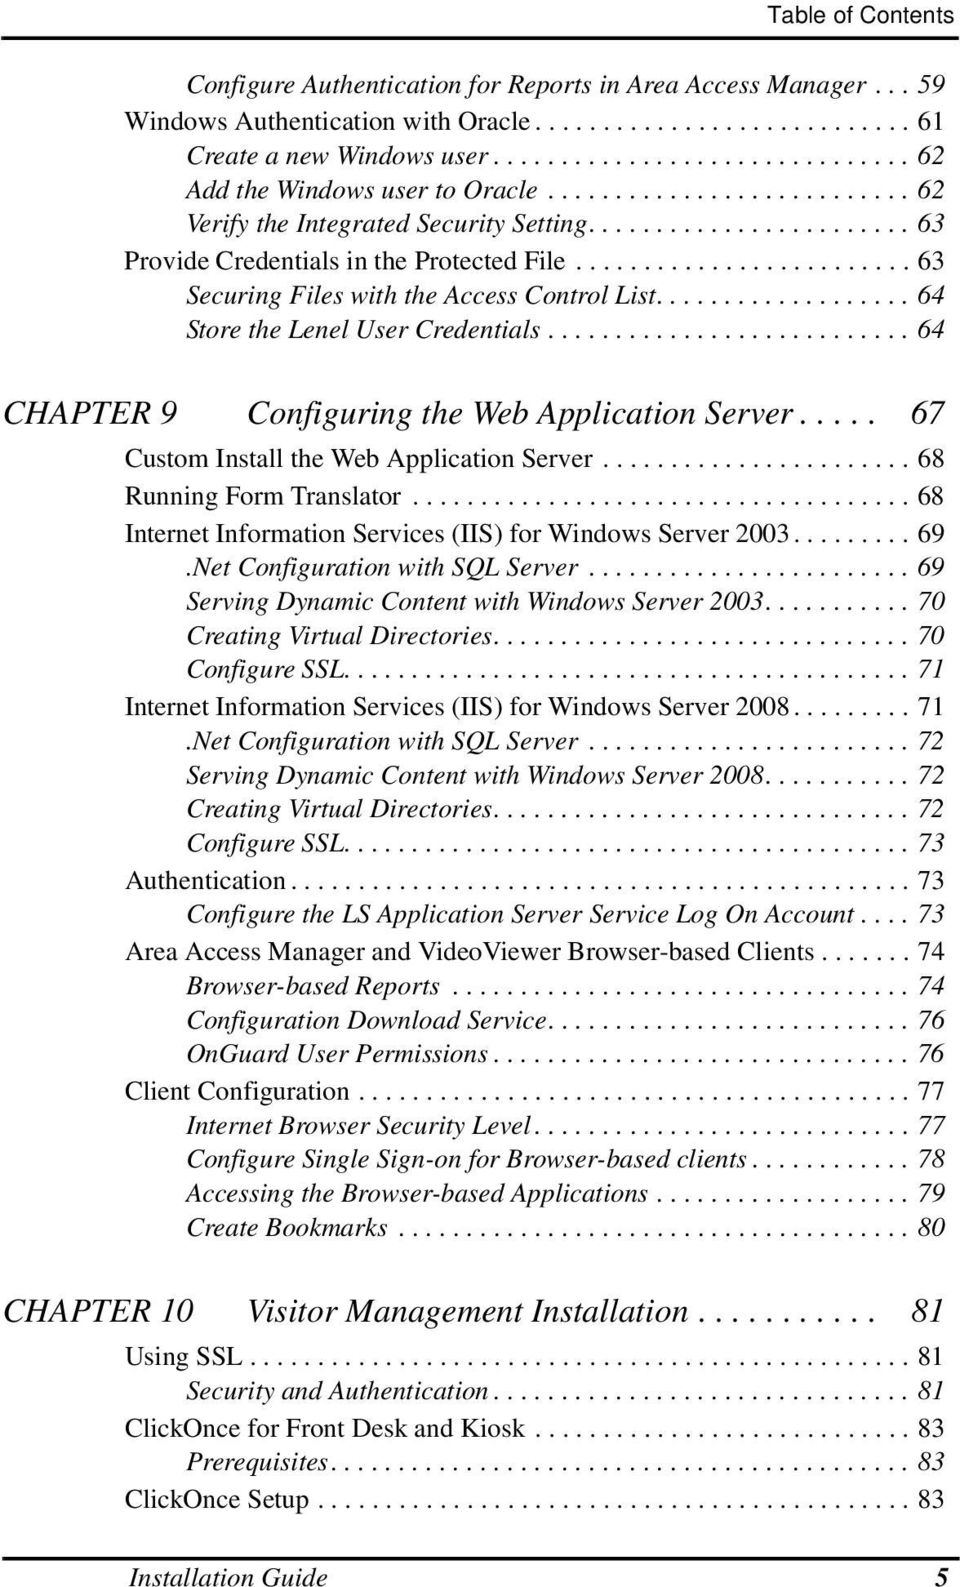 ........................ 63 Securing Files with the Access Control List................... 64 Store the Lenel User Credentials........................... 64 CHAPTER 9 Configuring the Web Application Server.